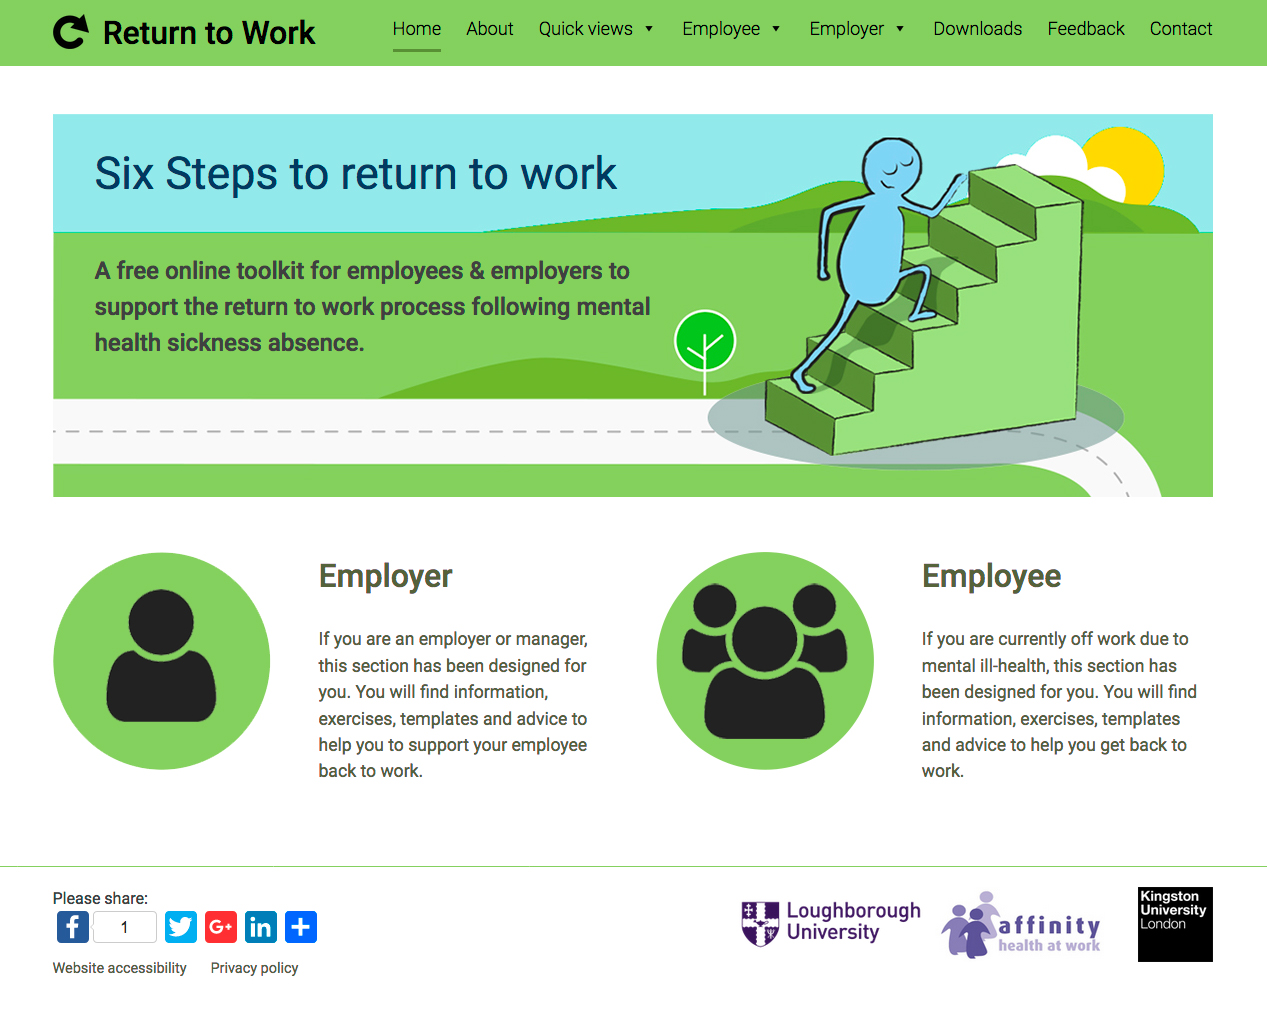 Return to Work website screenshot